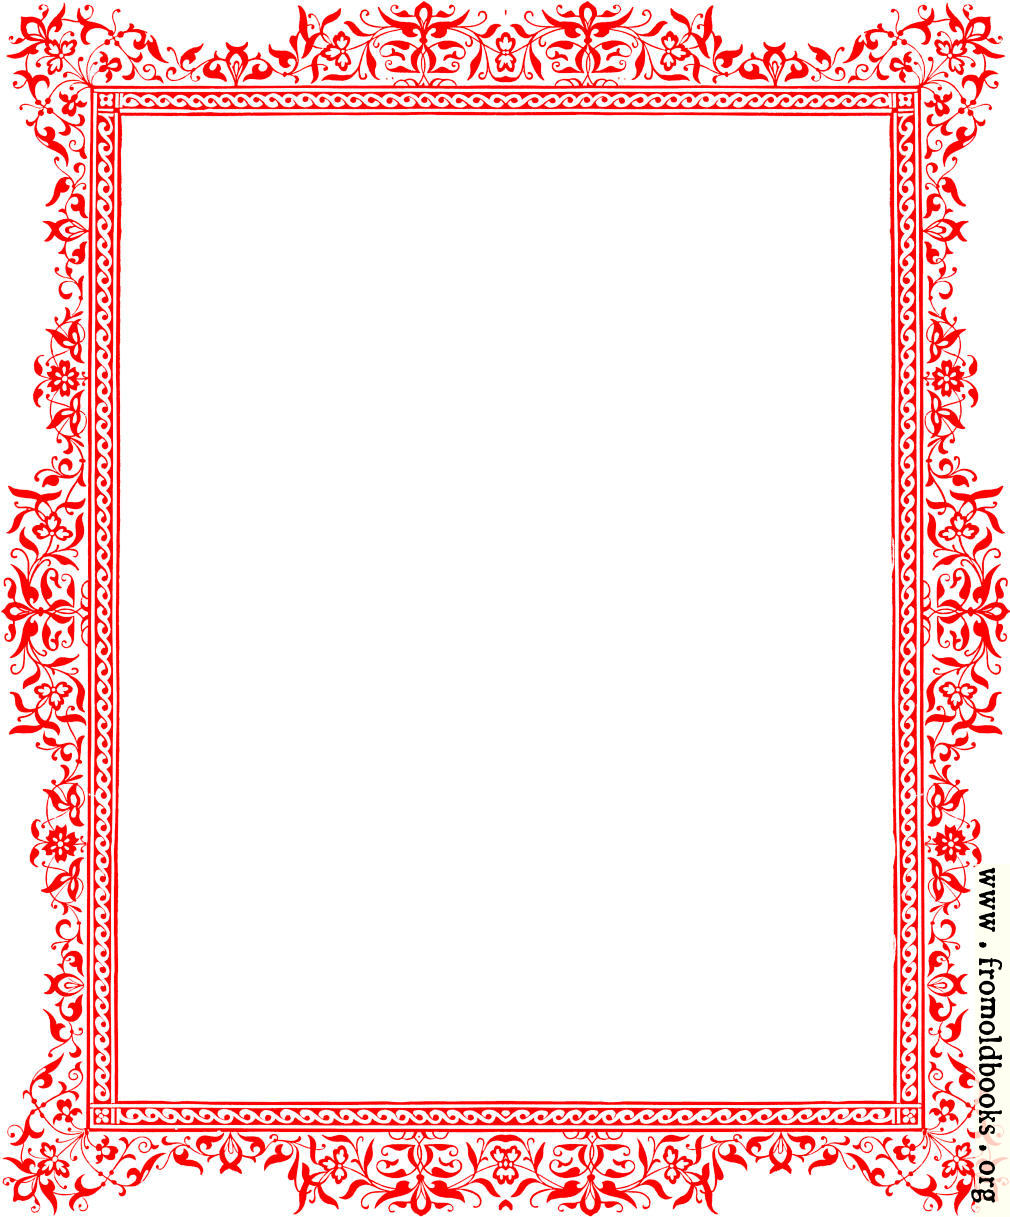 [Picture: Red border from Page 27]